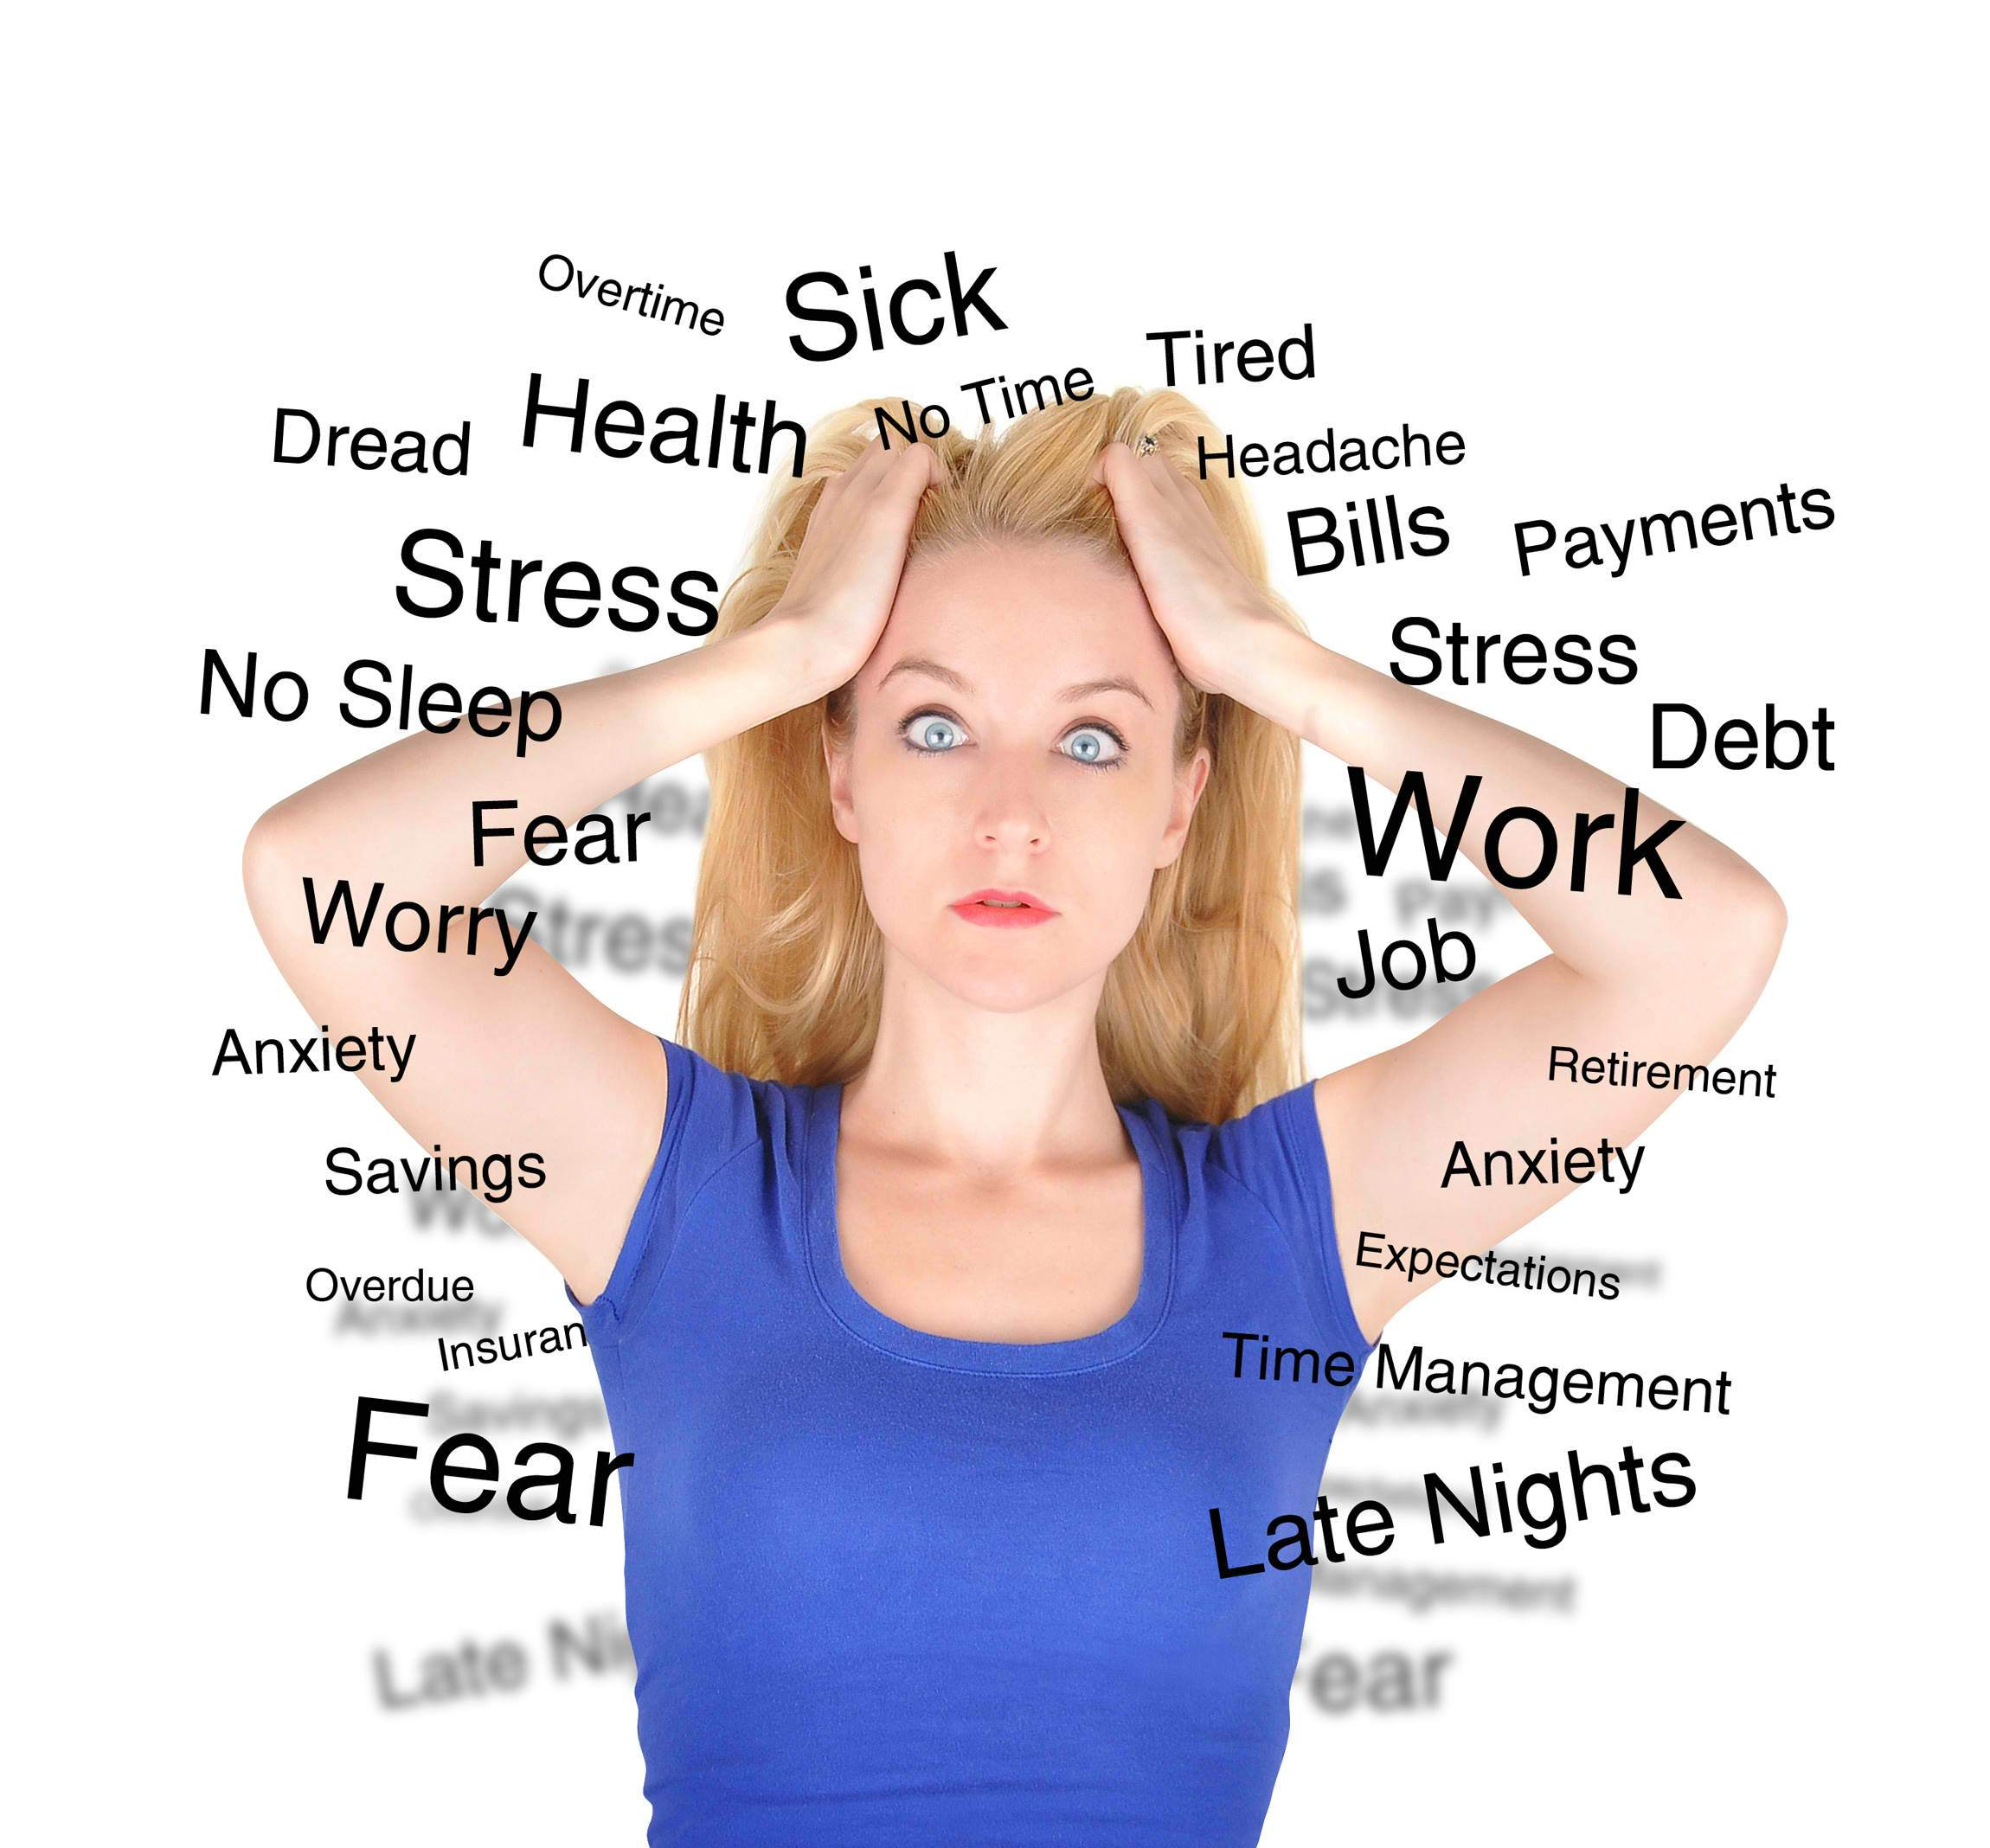 Image of a woman who looks stressed